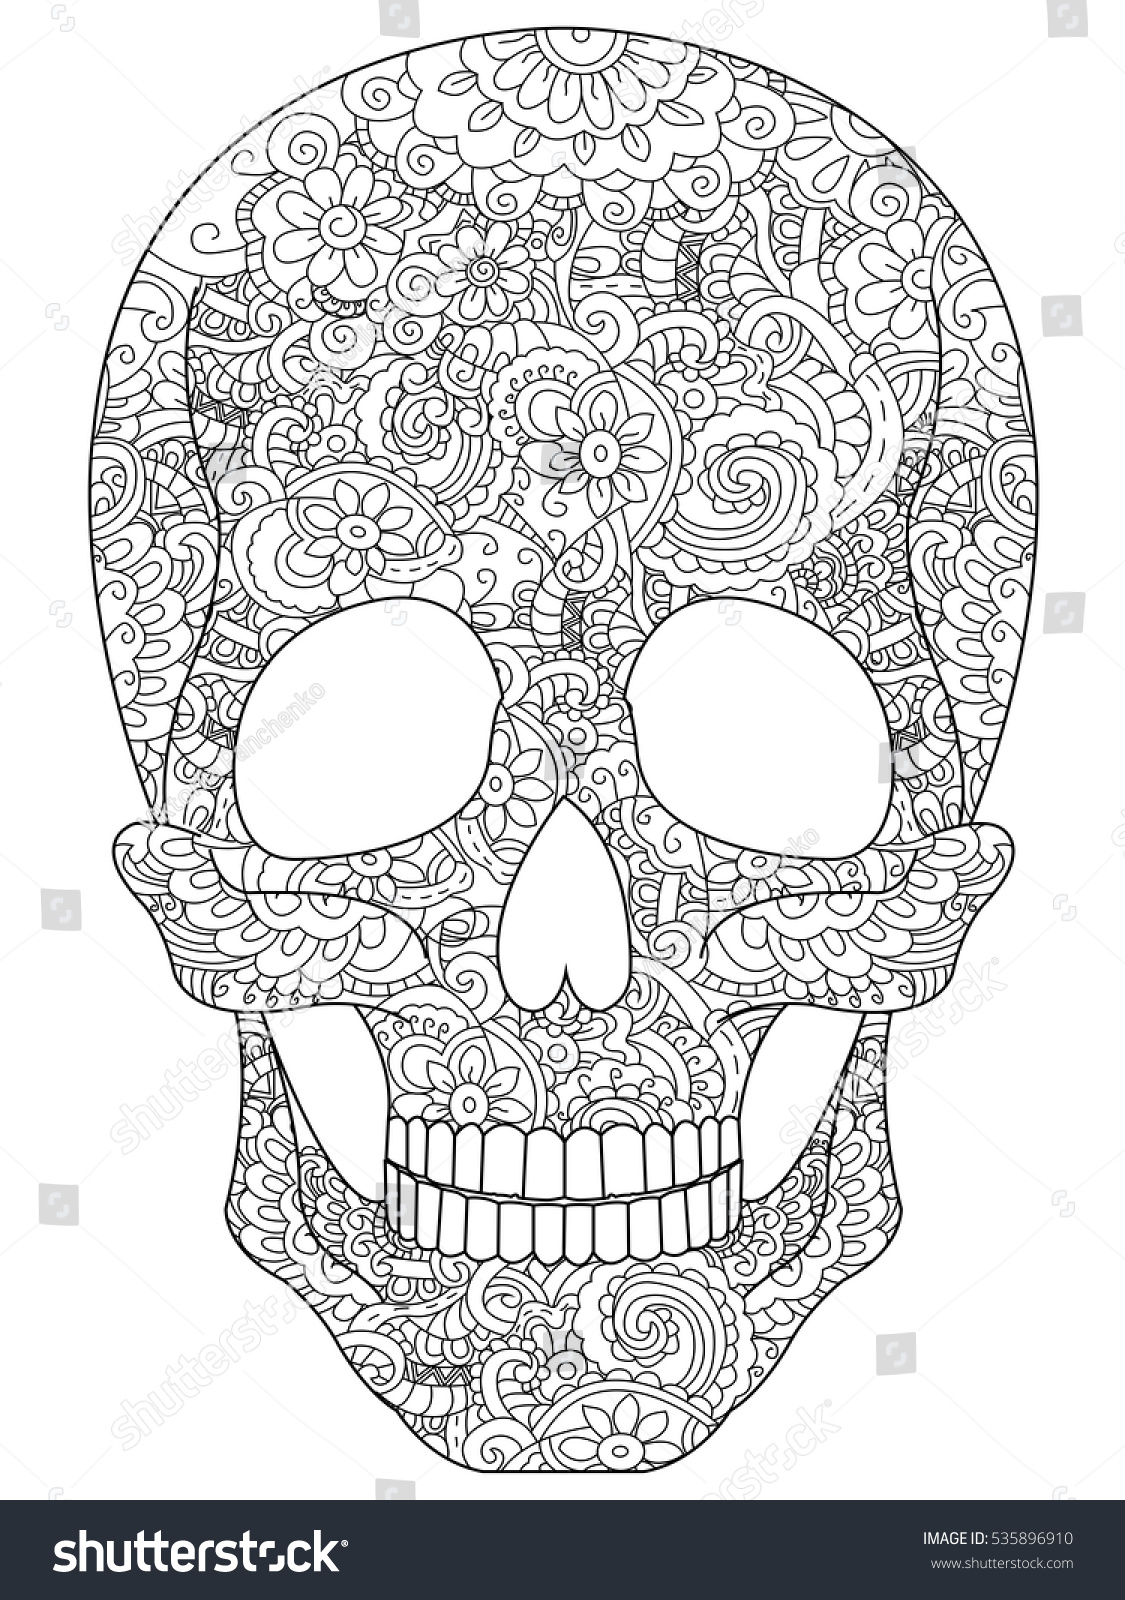 skull coloring book for adults raster illustration anti stress coloring for adult zentangle - Skull Coloring Book